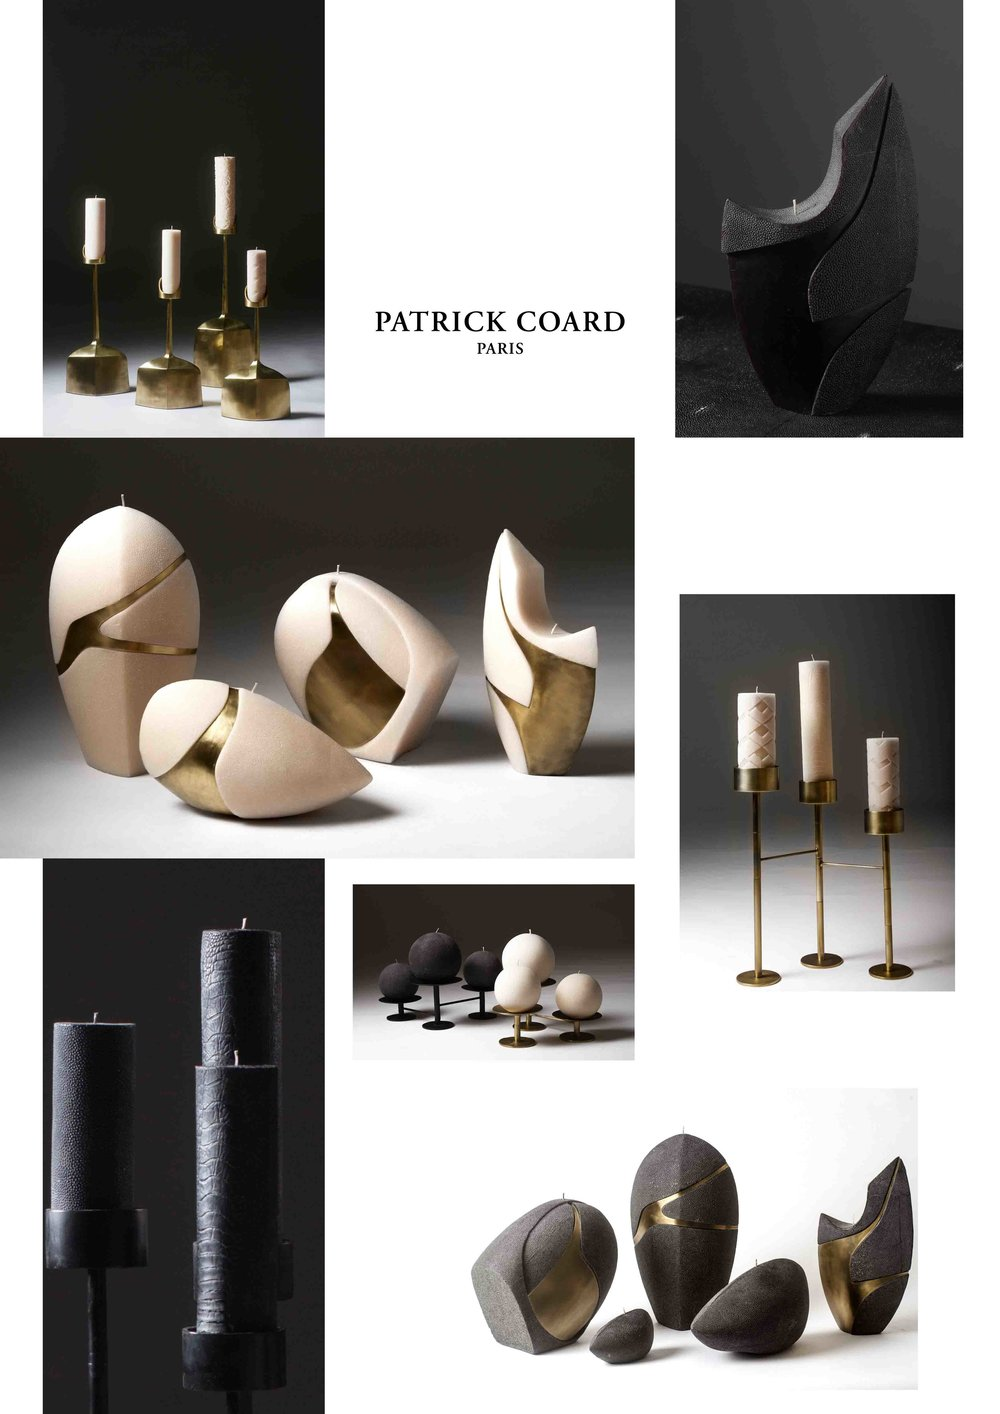 Patrick Coard Paris Sculptural Candles Shagreen Texture Candles